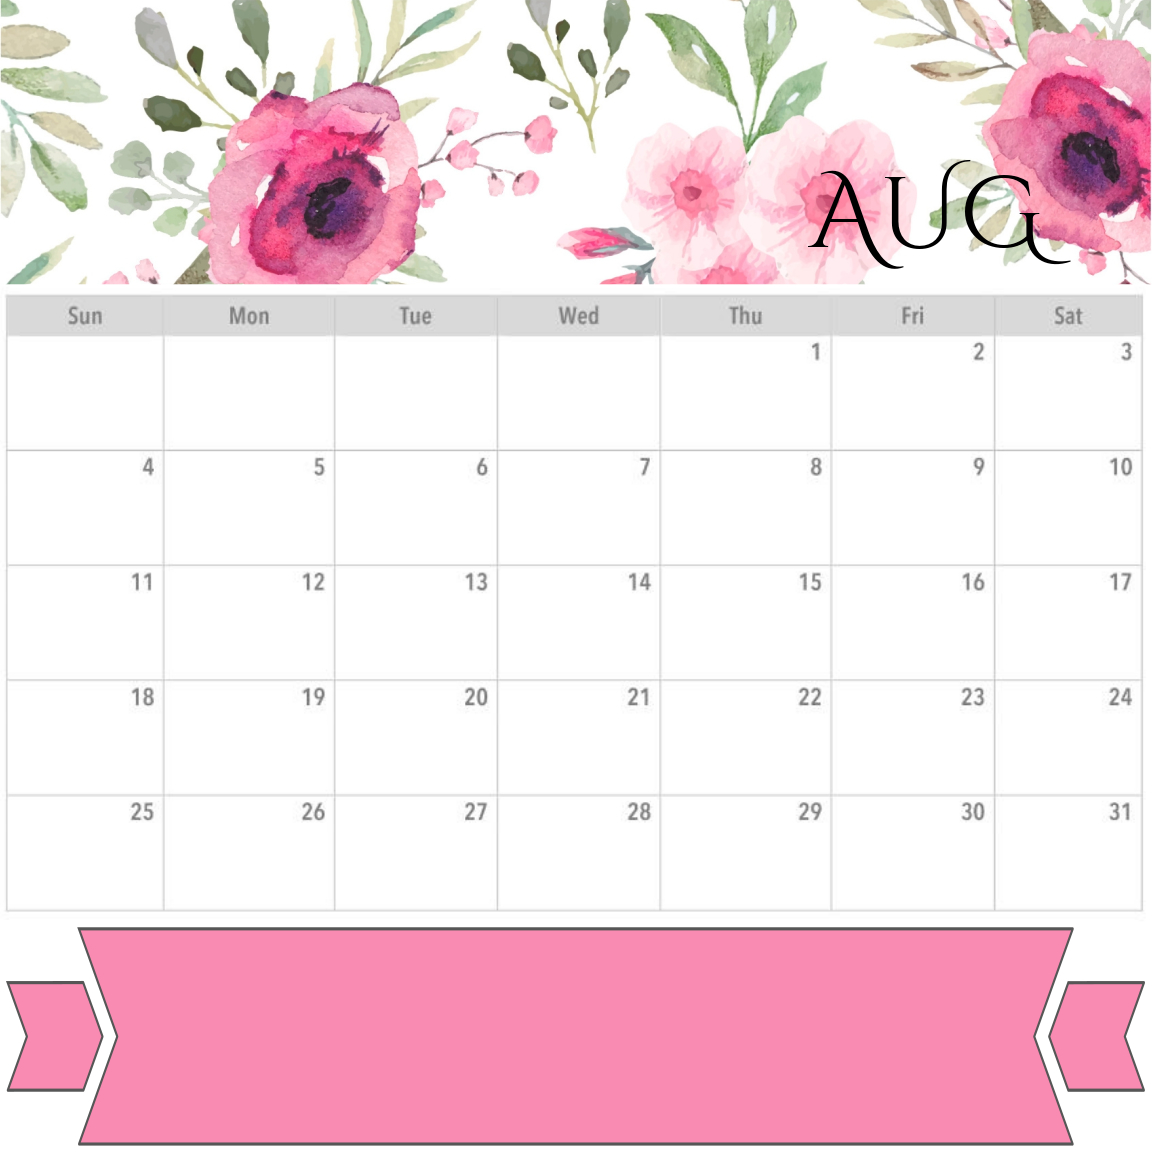 image about Printable Monthly Calendar August named PRINTABLES - PLANNER - AUGUST 2019 CALENDAR Month-to-month WEEKLY